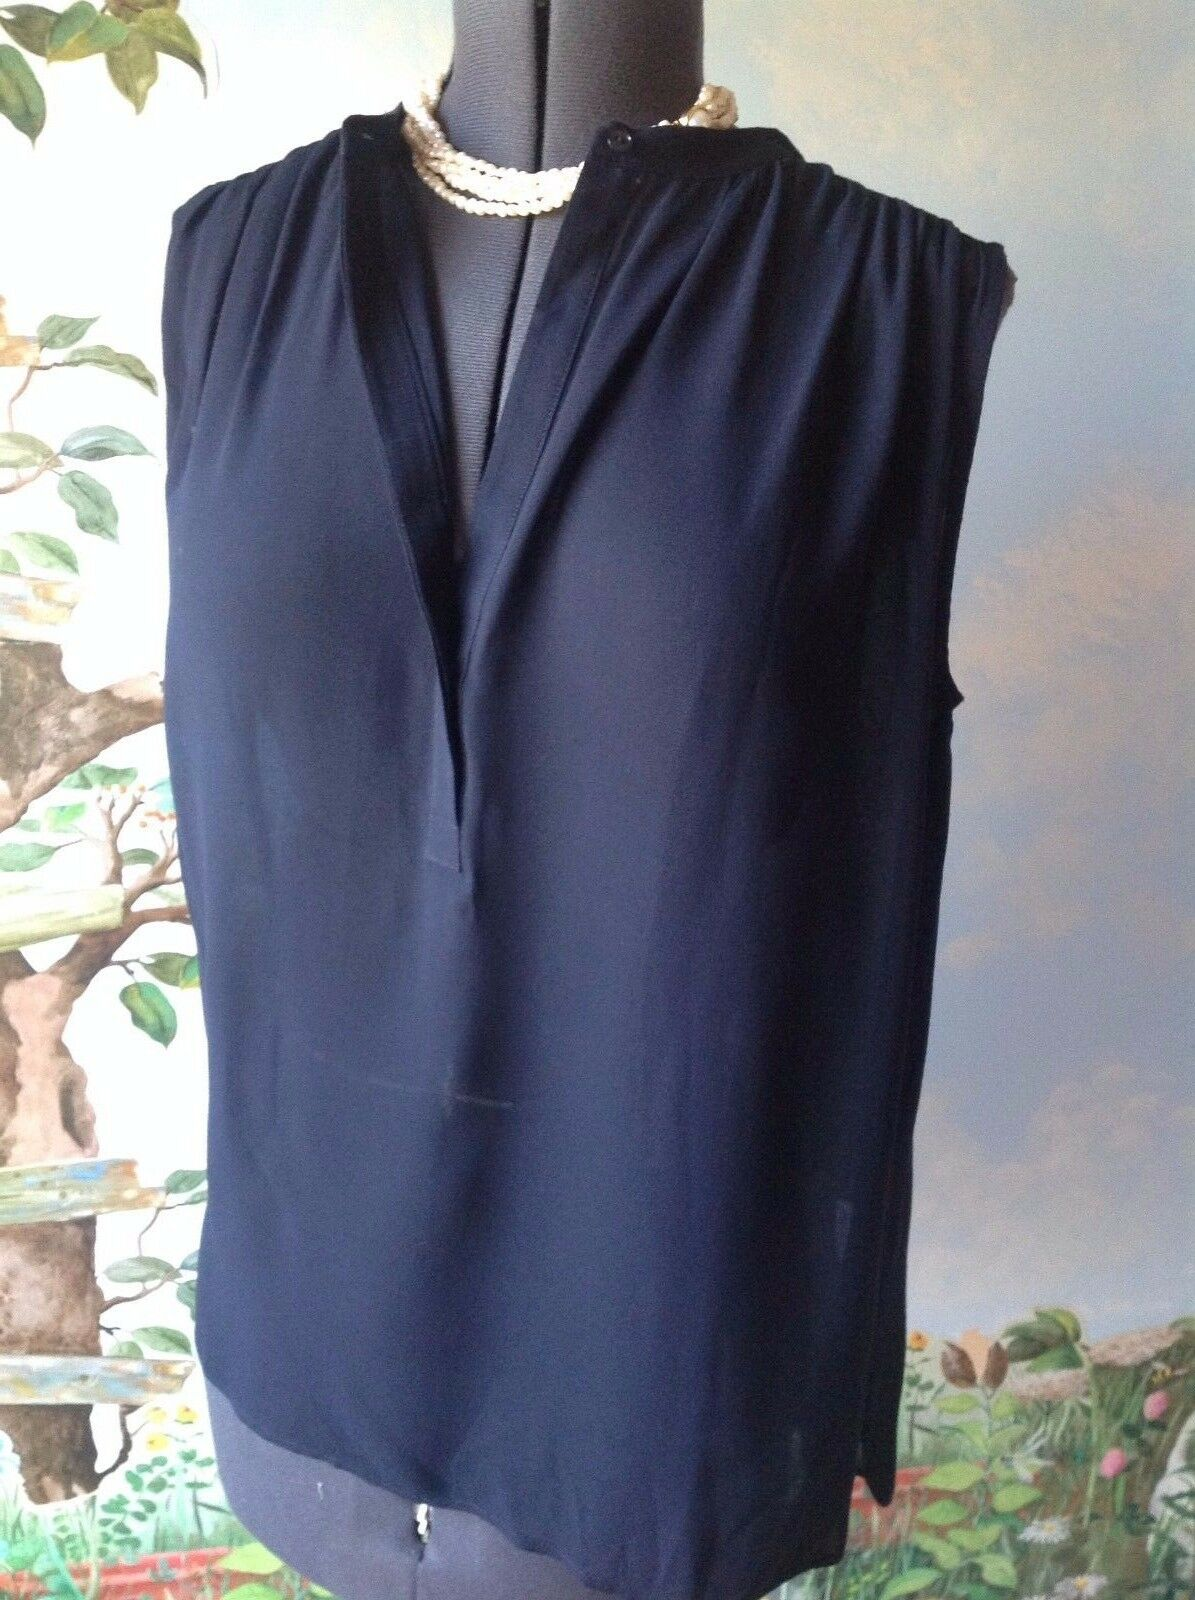 Vince Blau Sleeveless Shirrot Shoulder Crepe Button Front Top Blouse Größe 6 New